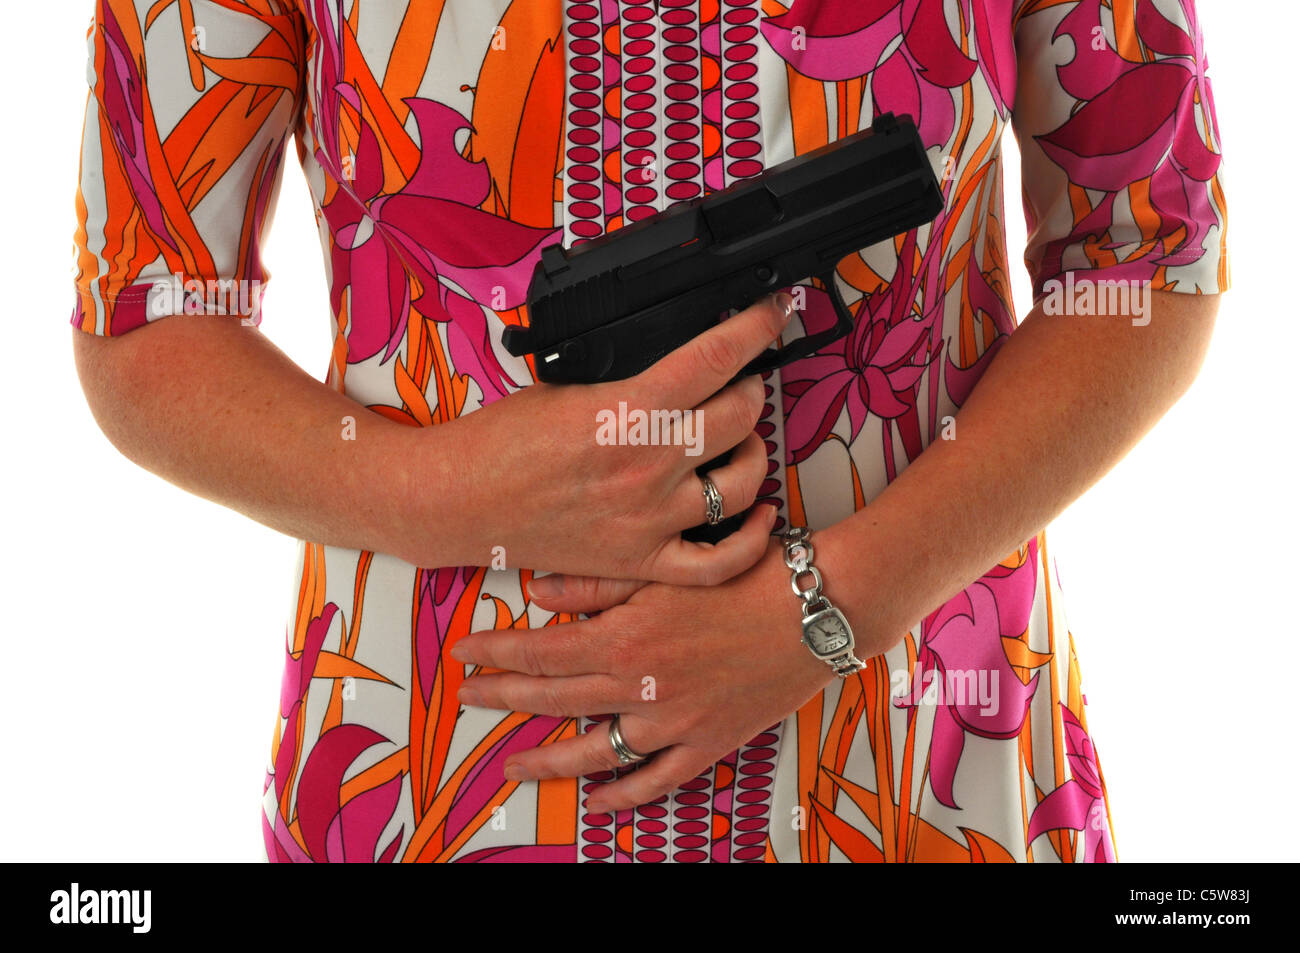 Woman with a gun - Stock Image